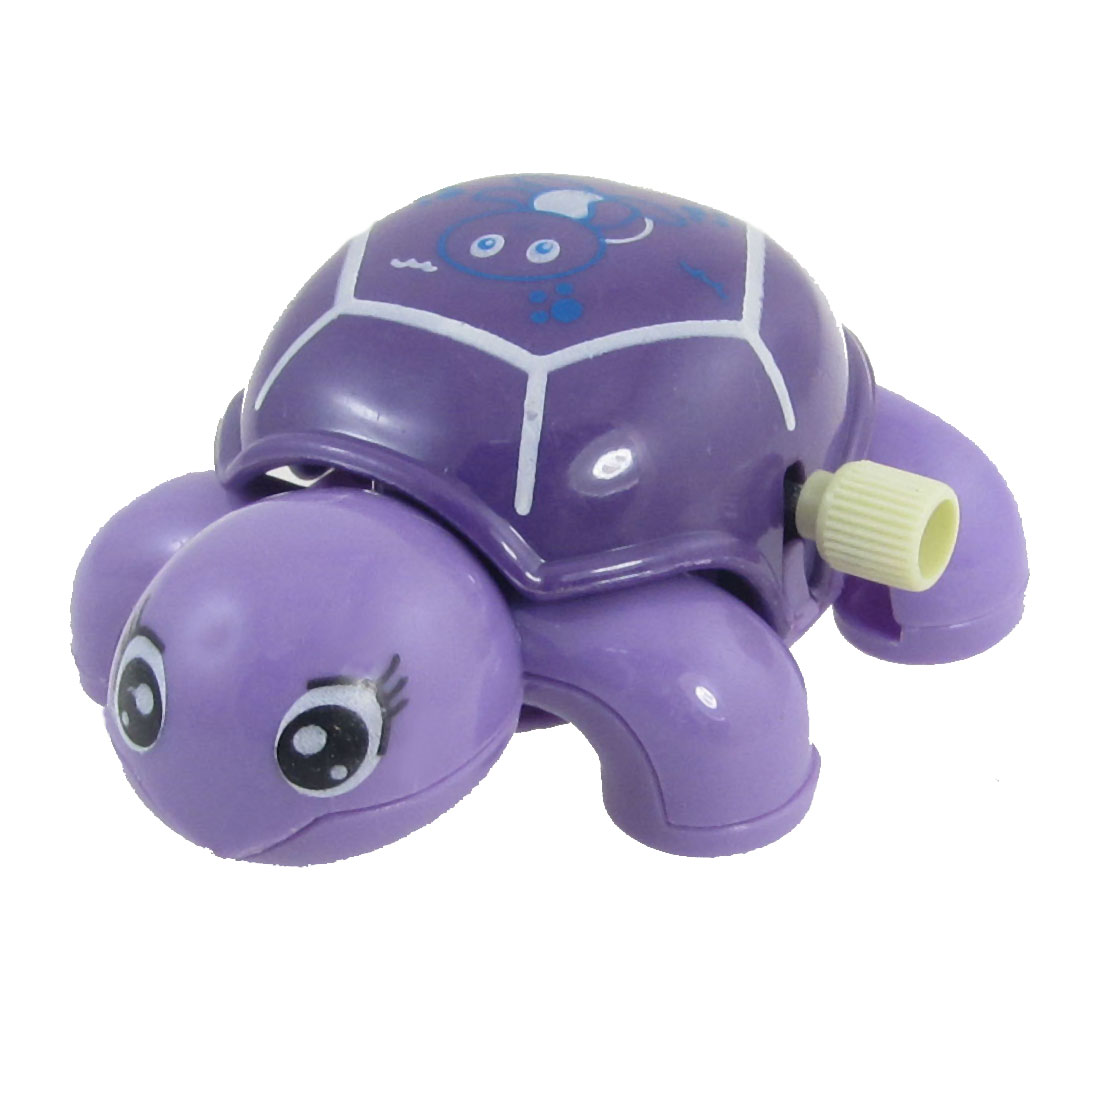 Plastic Wind Up Clockwork Animal Turtle Toy Gift Purple for Kids Child